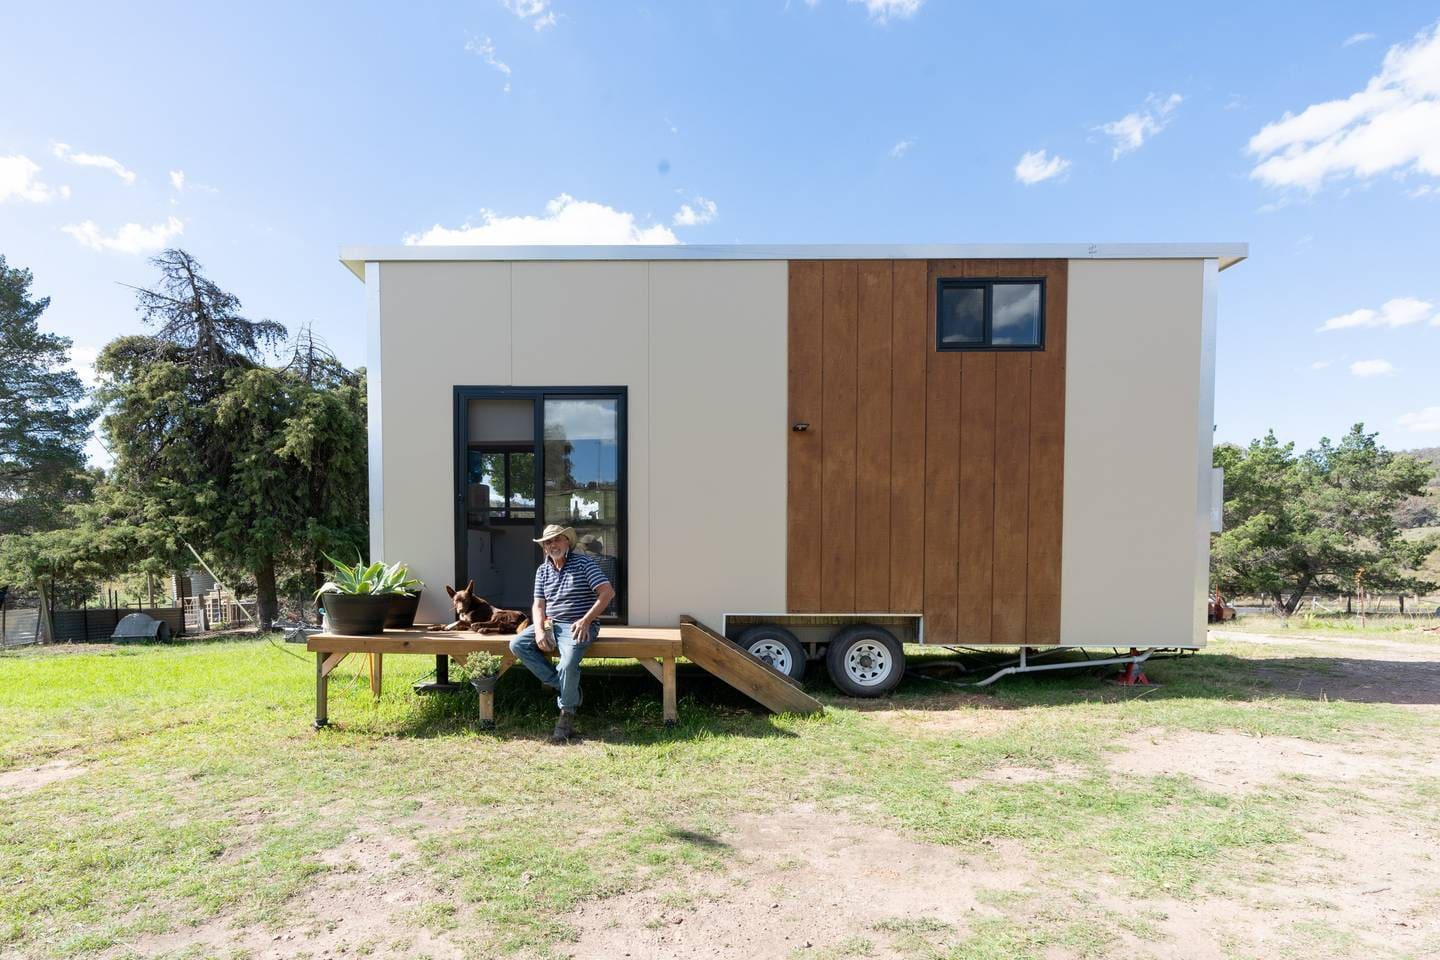 welcome! my name is Fernando and i'm your host for the tiny house